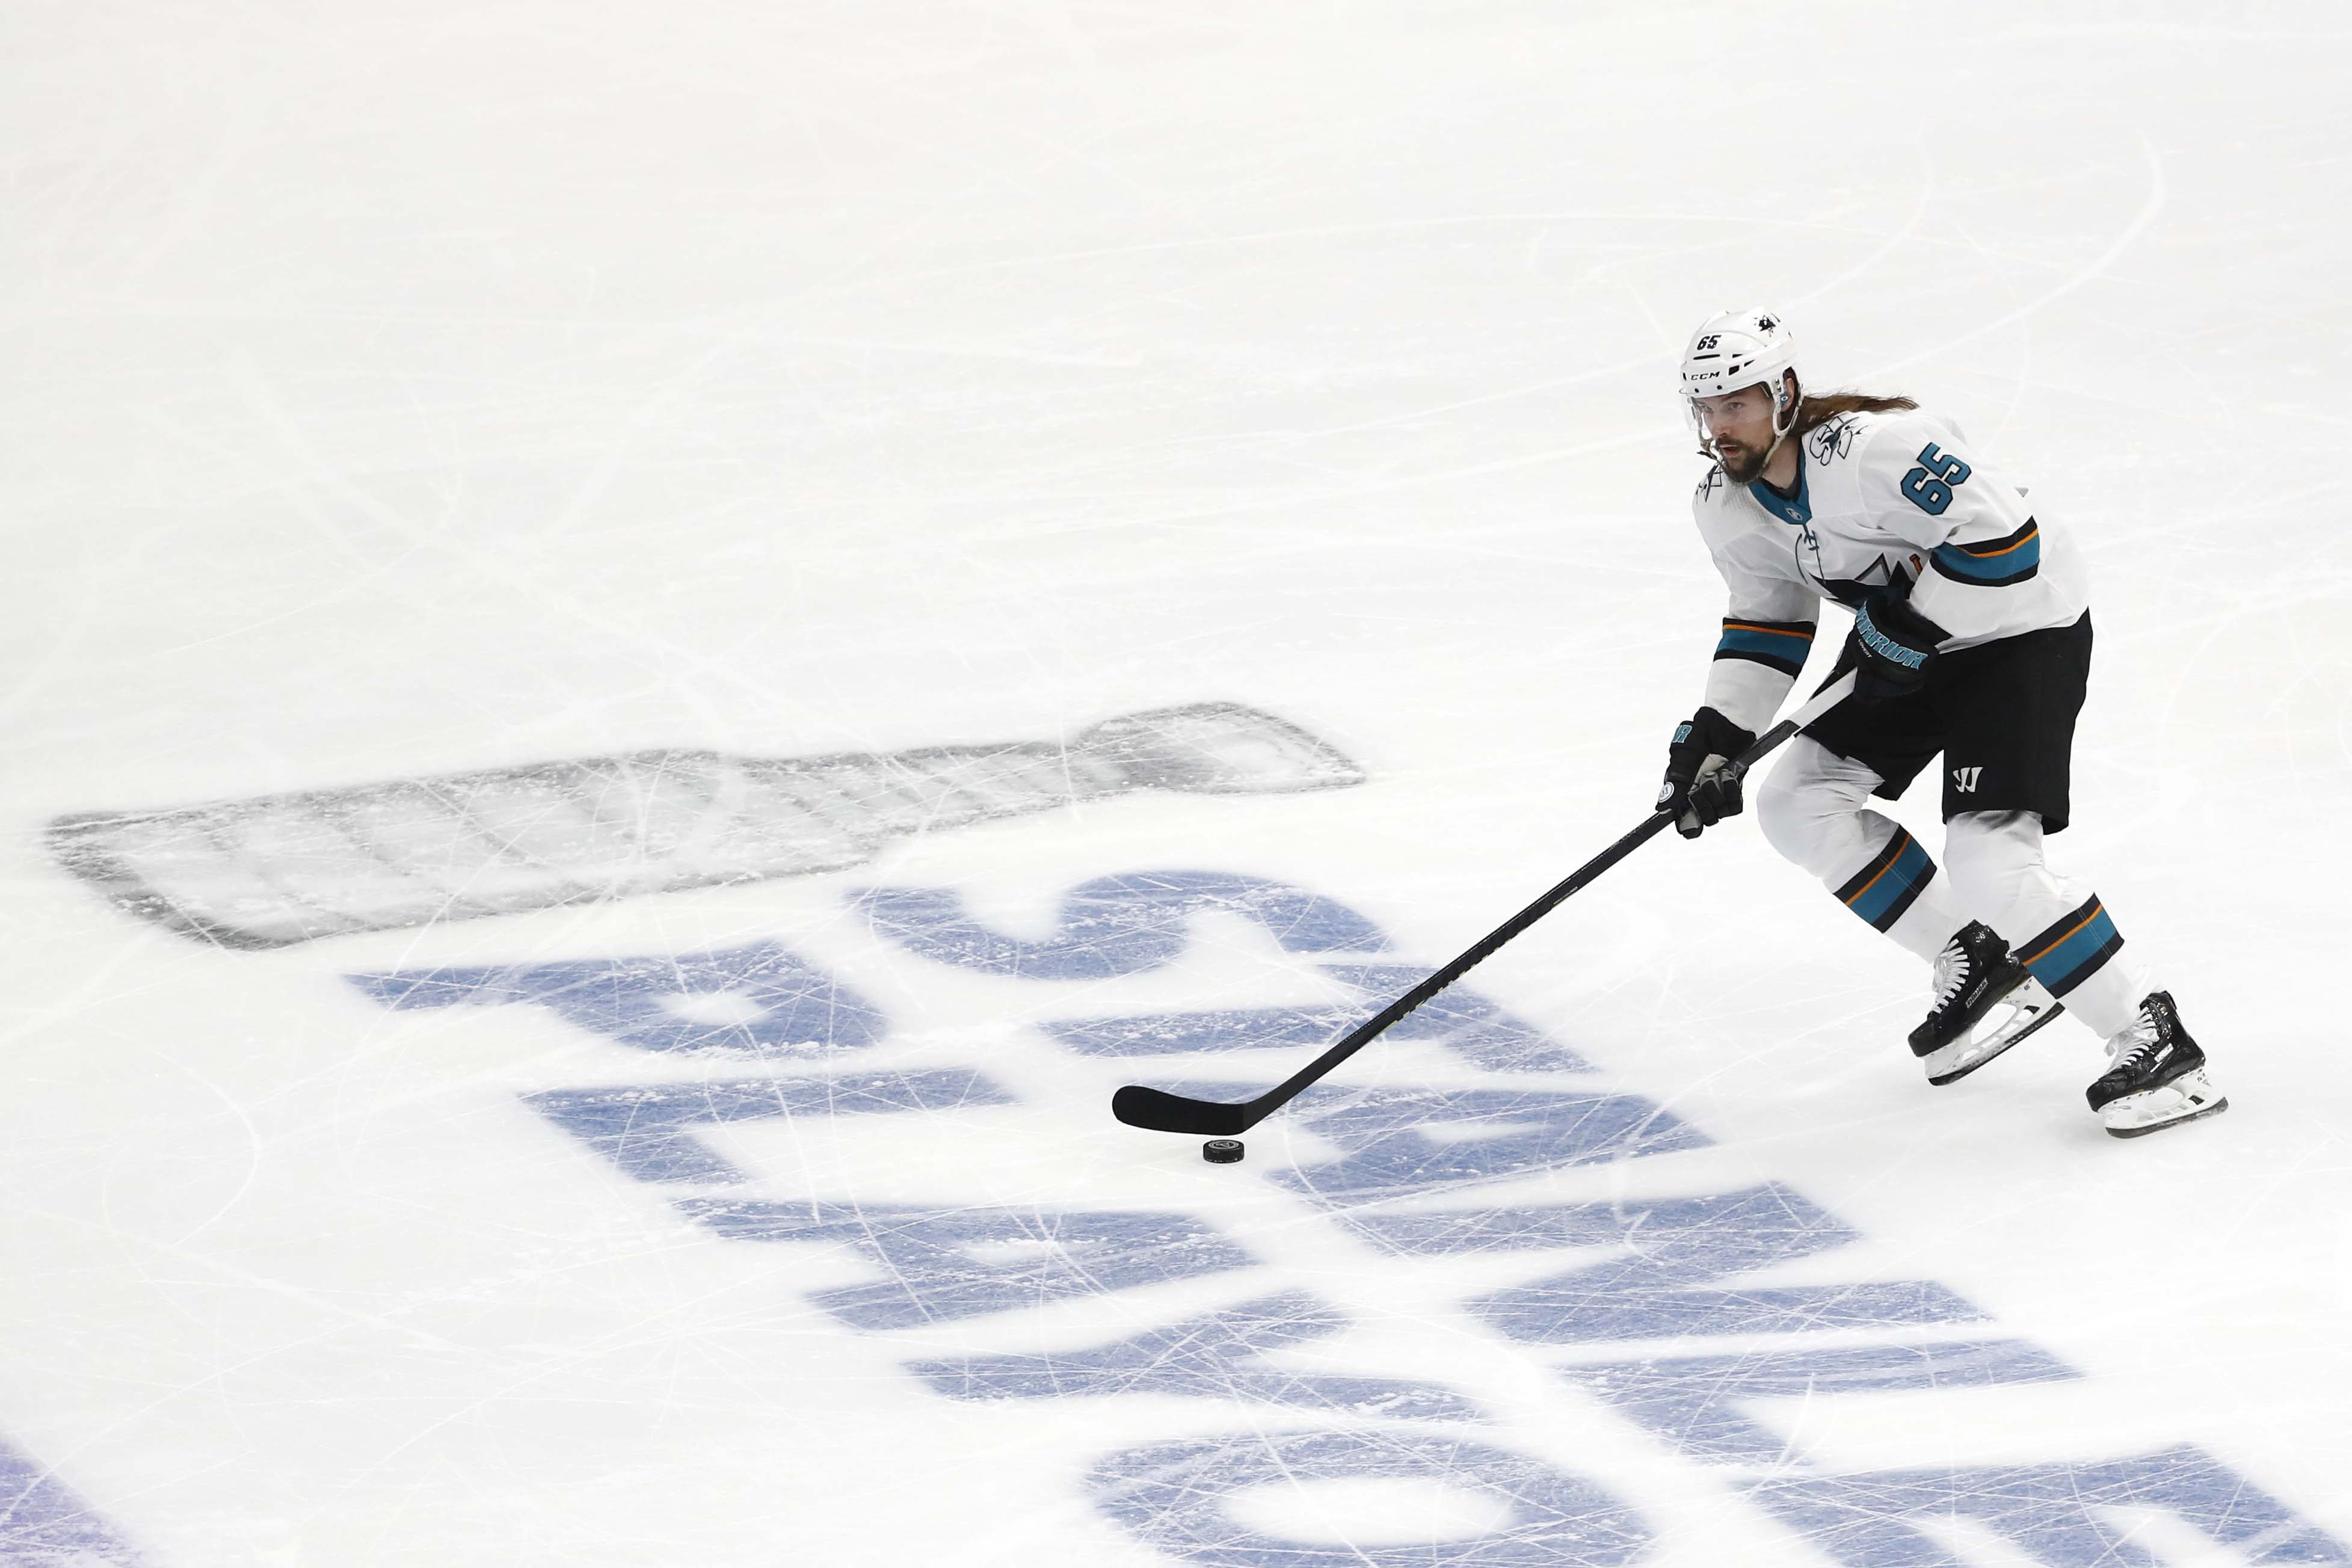 San Jose Sharks defenseman Erik Karlsson (65) skates with the puck during the first period in game three of the Western Conference Final of the 2019 Stanley Cup Playoffs against the St. Louis Blues at Enterprise Center.